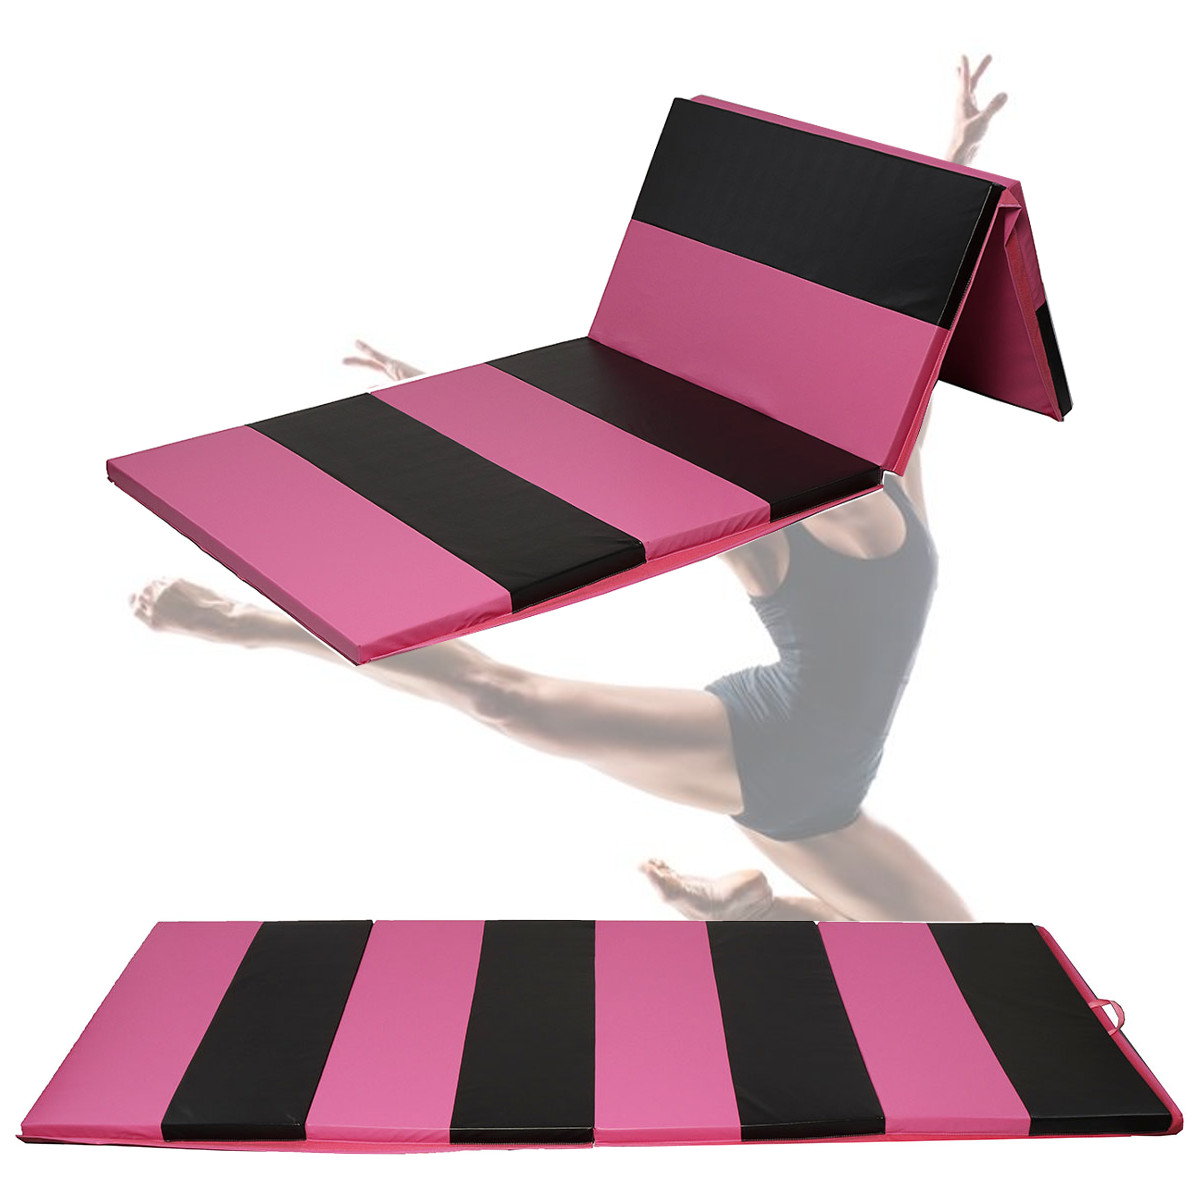 10FT Protable Folding Gymnastics Tumble Mat Yoga Exercise Fitness Pilates Gym Black Pink Stripe canvas elephant yoga mat bag large capacity gym bag sports handbag fitness dance gymnastics pilates athletes exercise mat bags